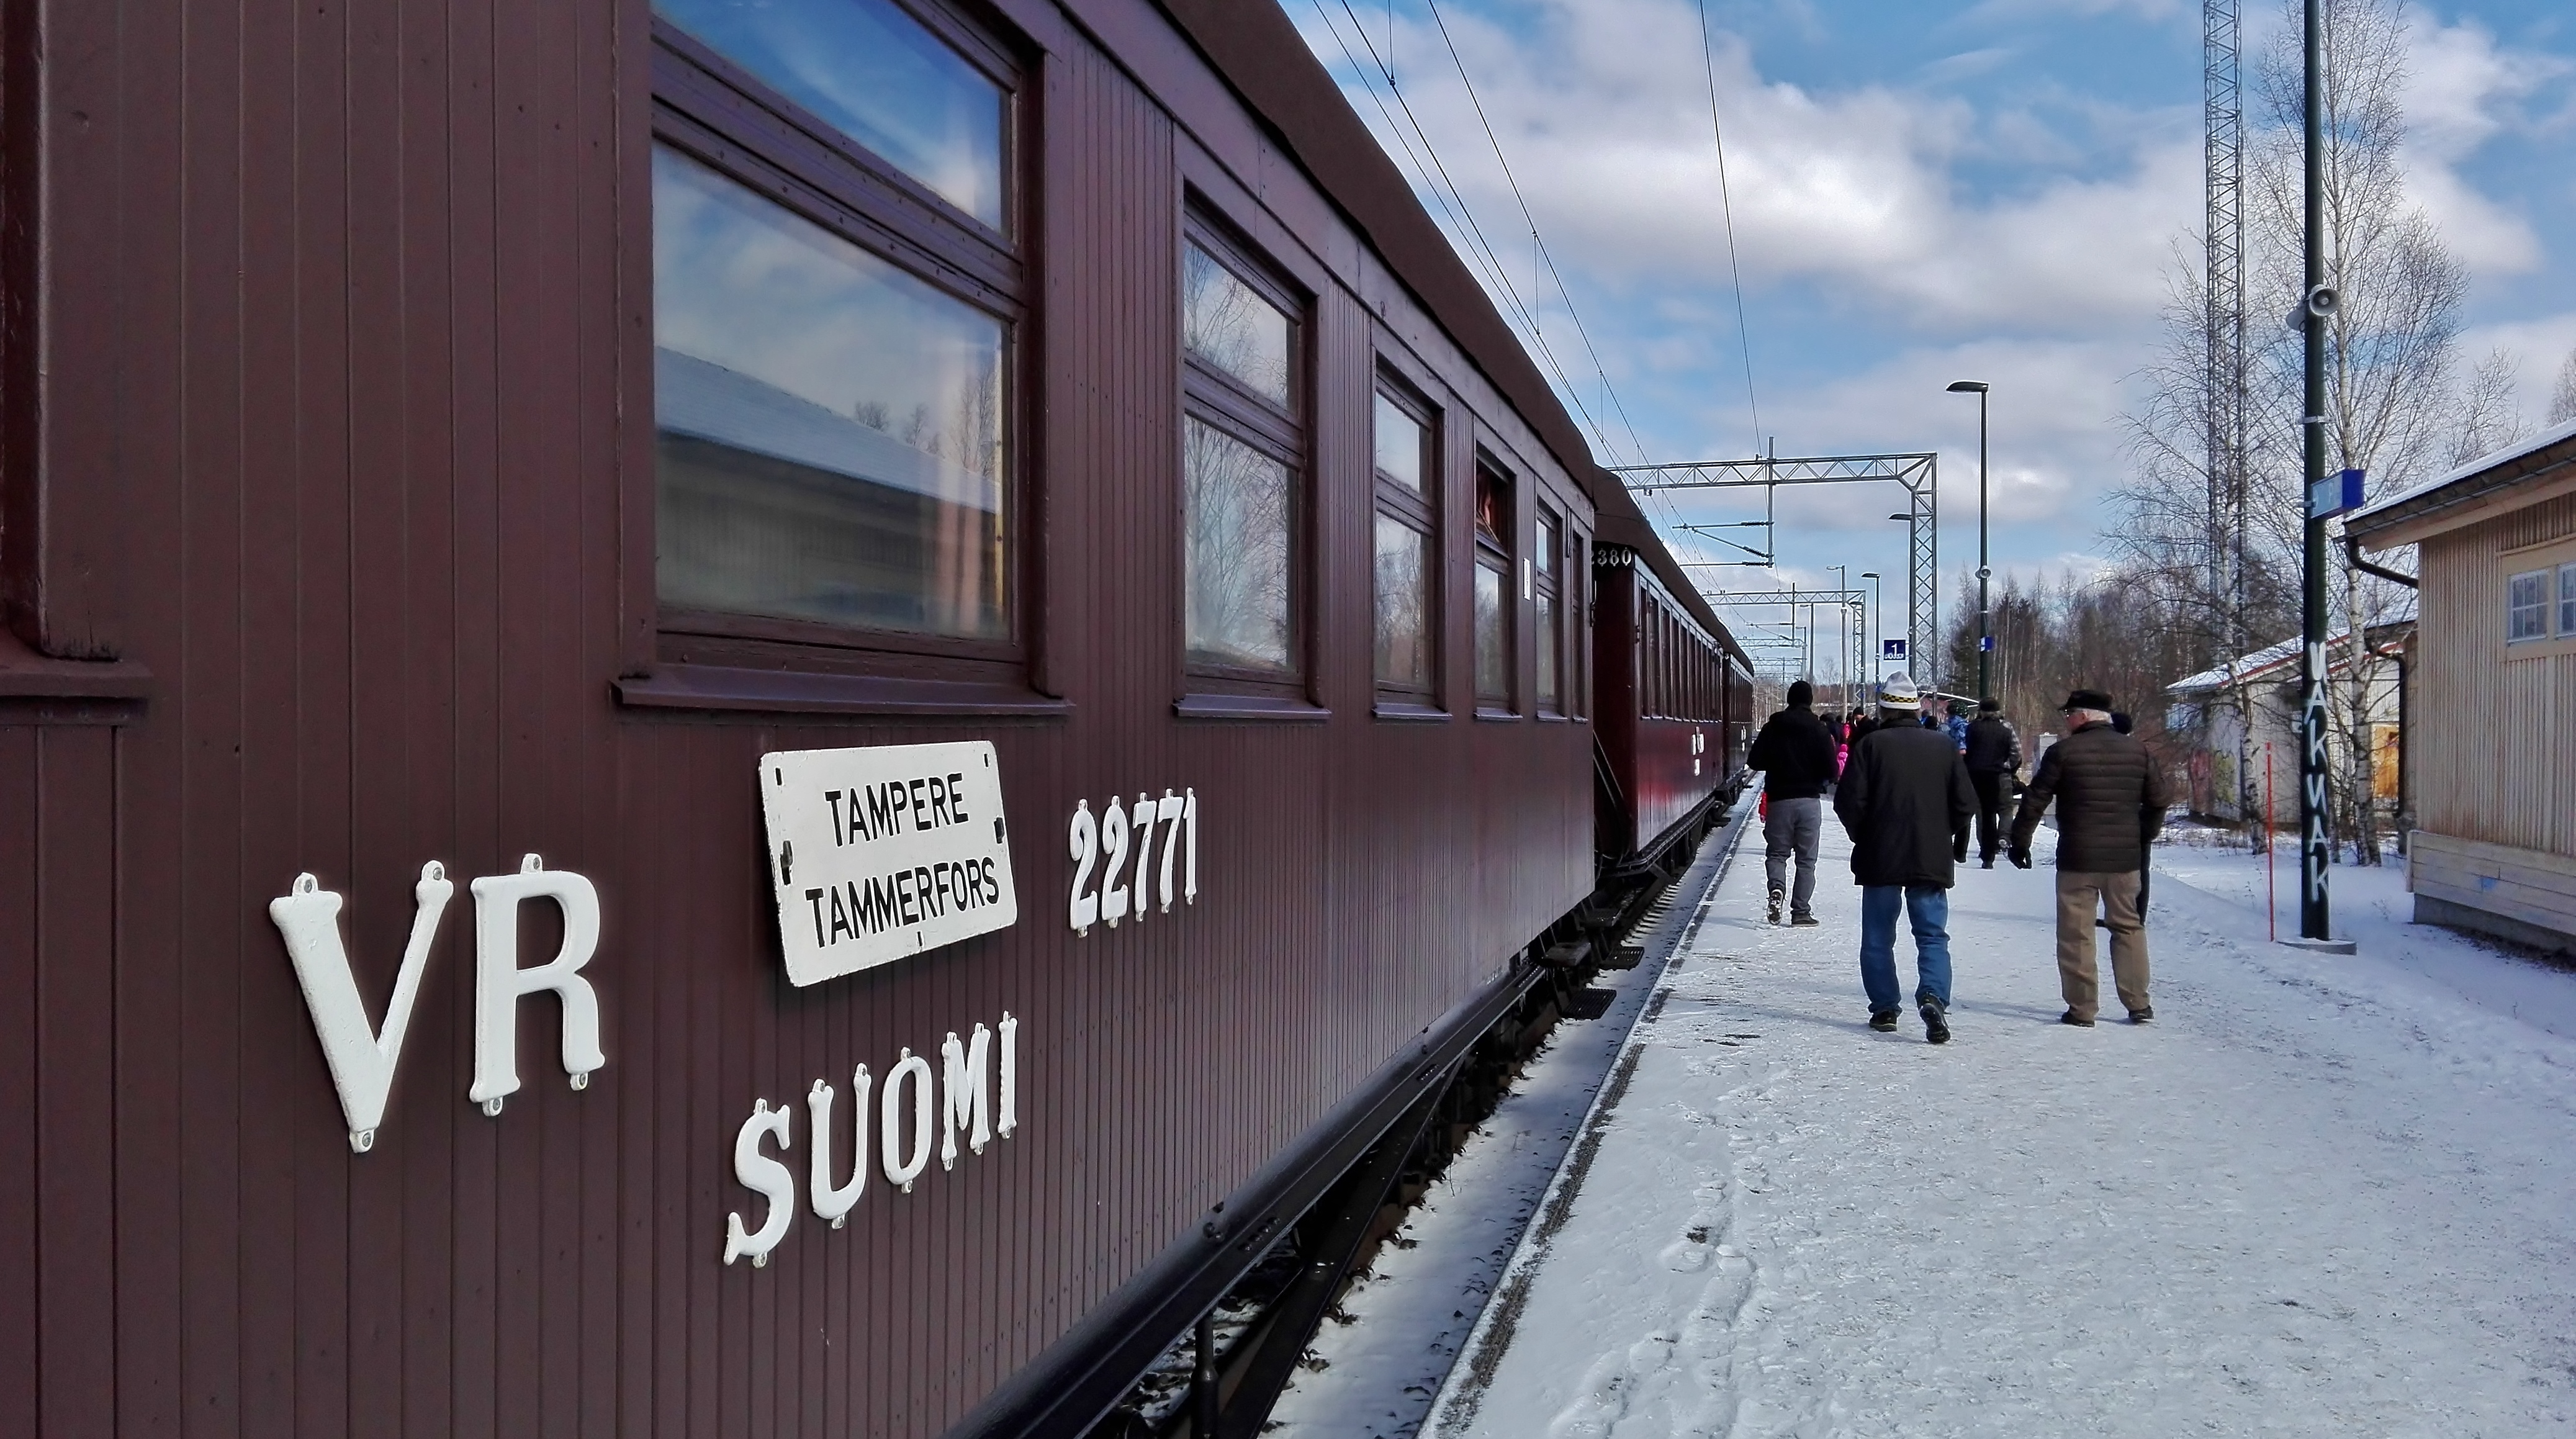 Siuro railway station 16th April 2017 Easter steam train Nokia-Tampere 2.jpg